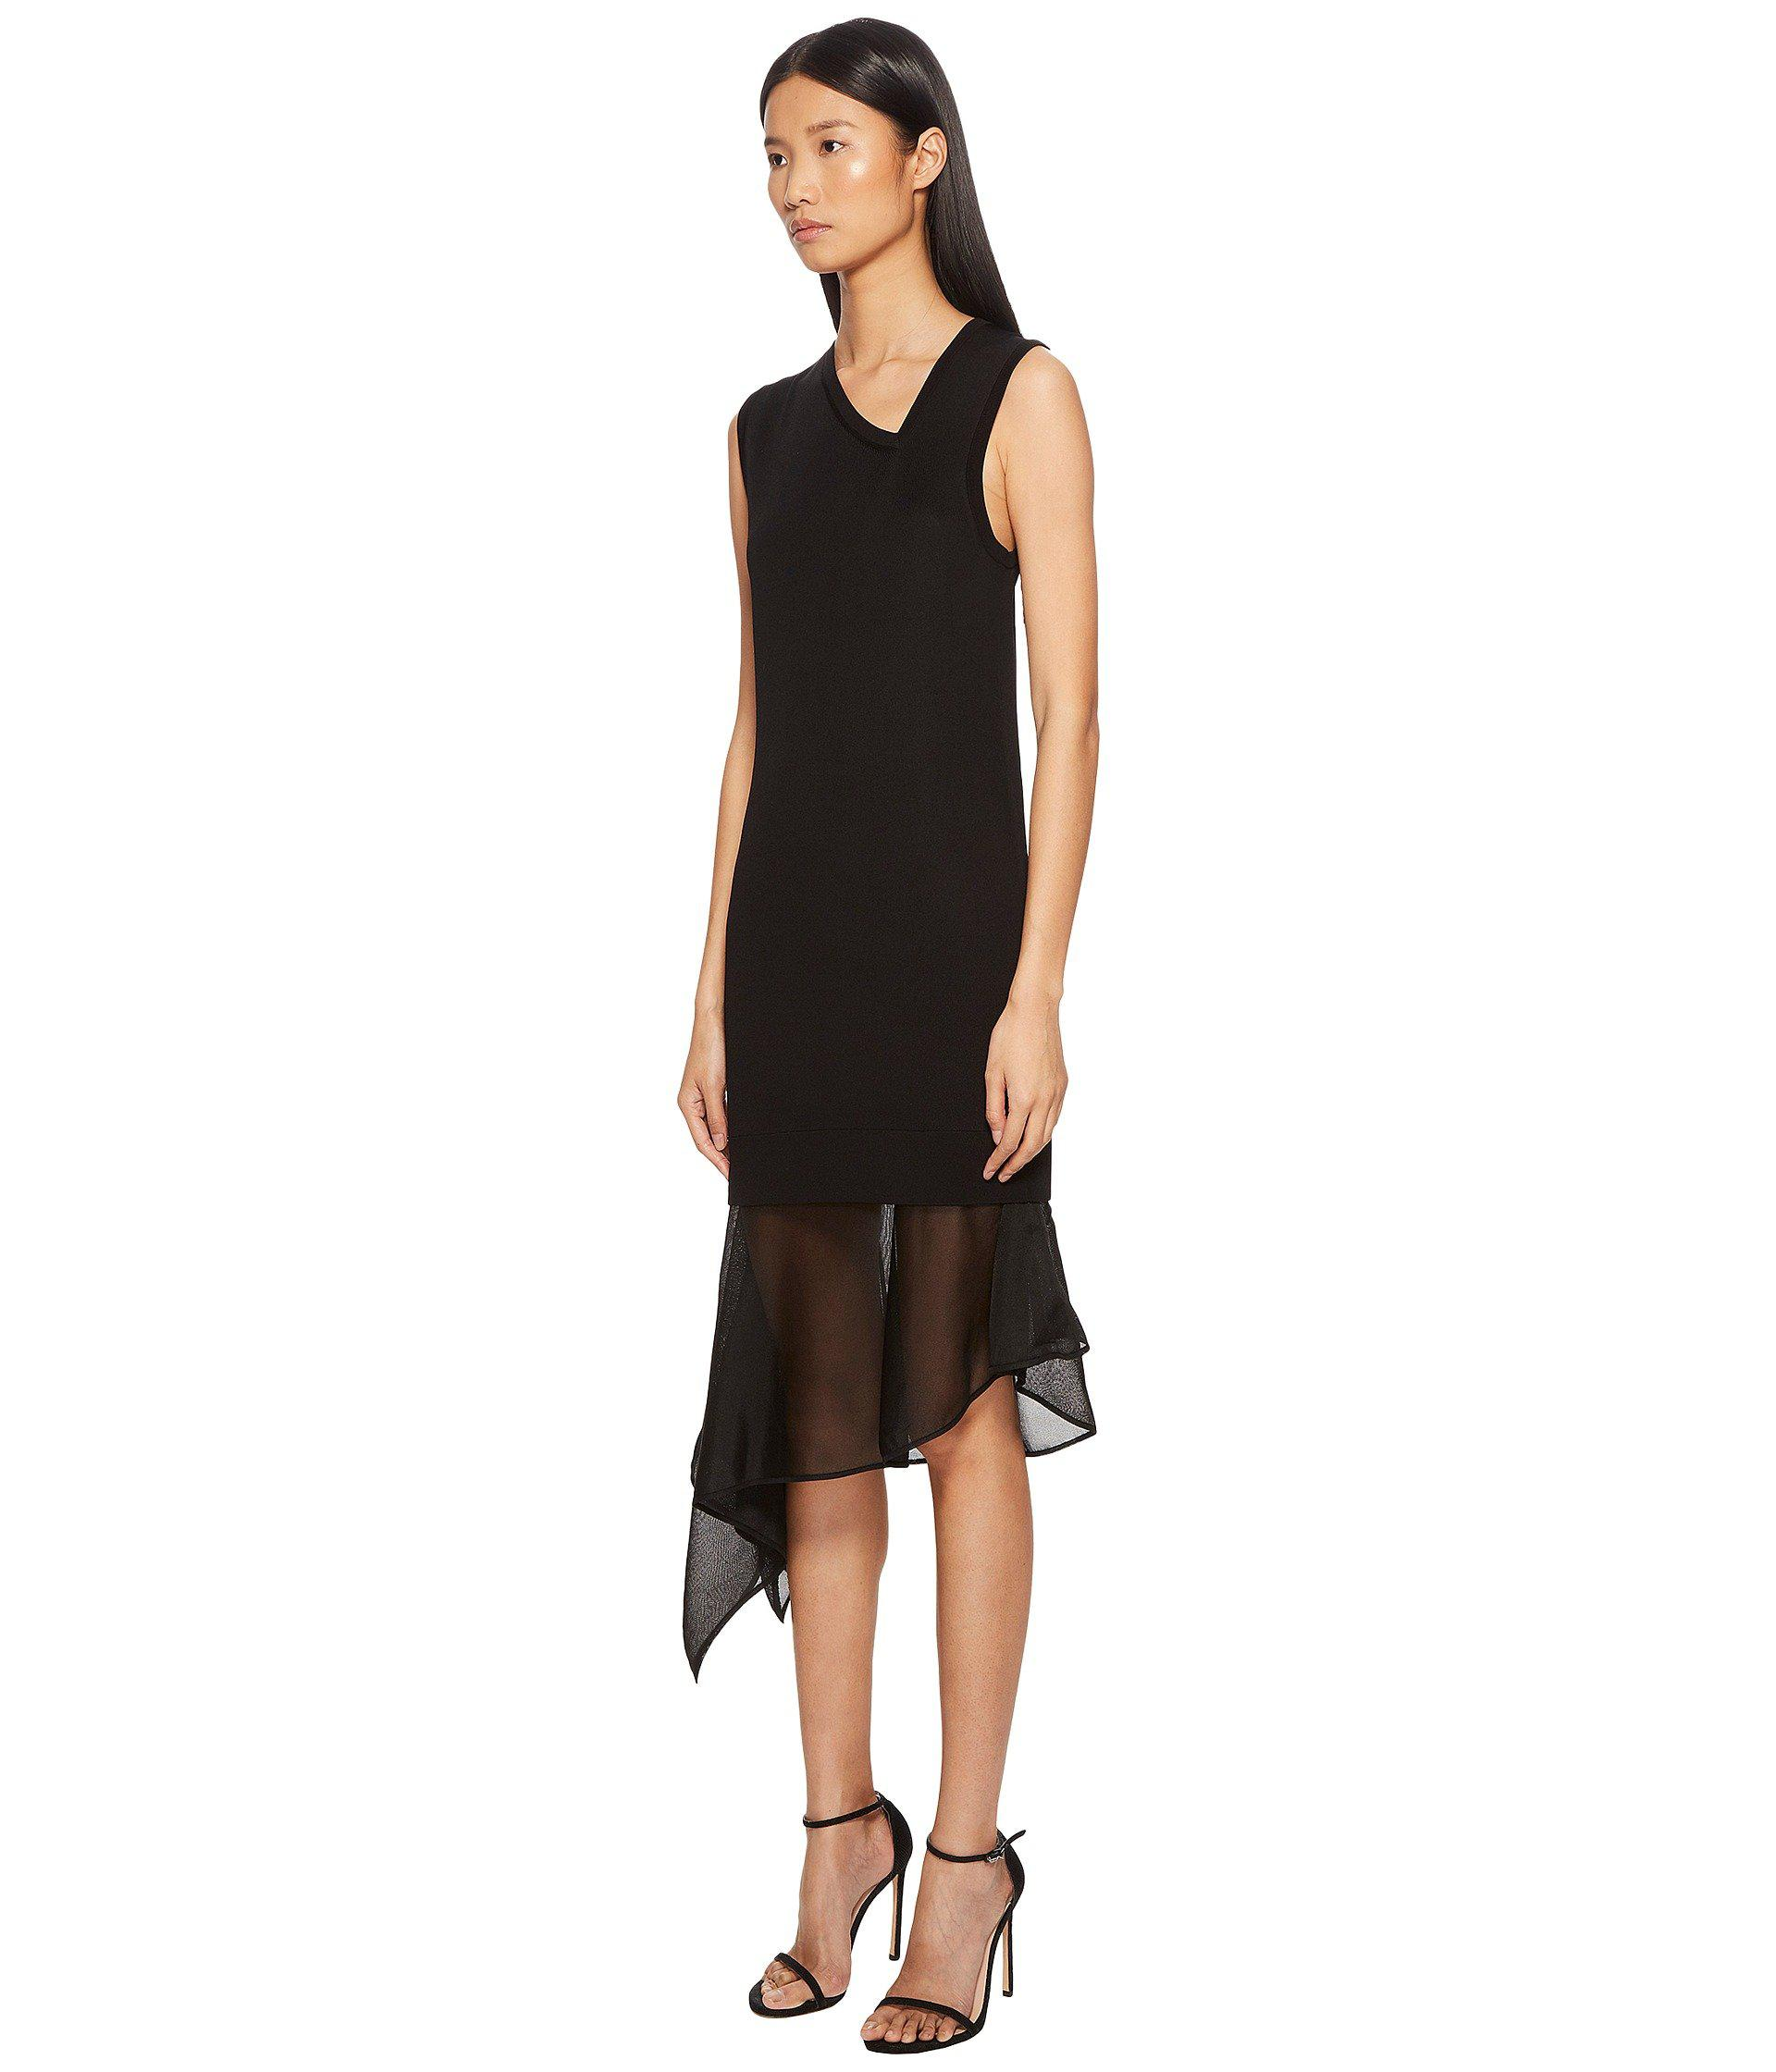 f2ea6cf5a3b Lyst - Neil Barrett Techno Knit Asymmetric Dress in Black - Save 55%